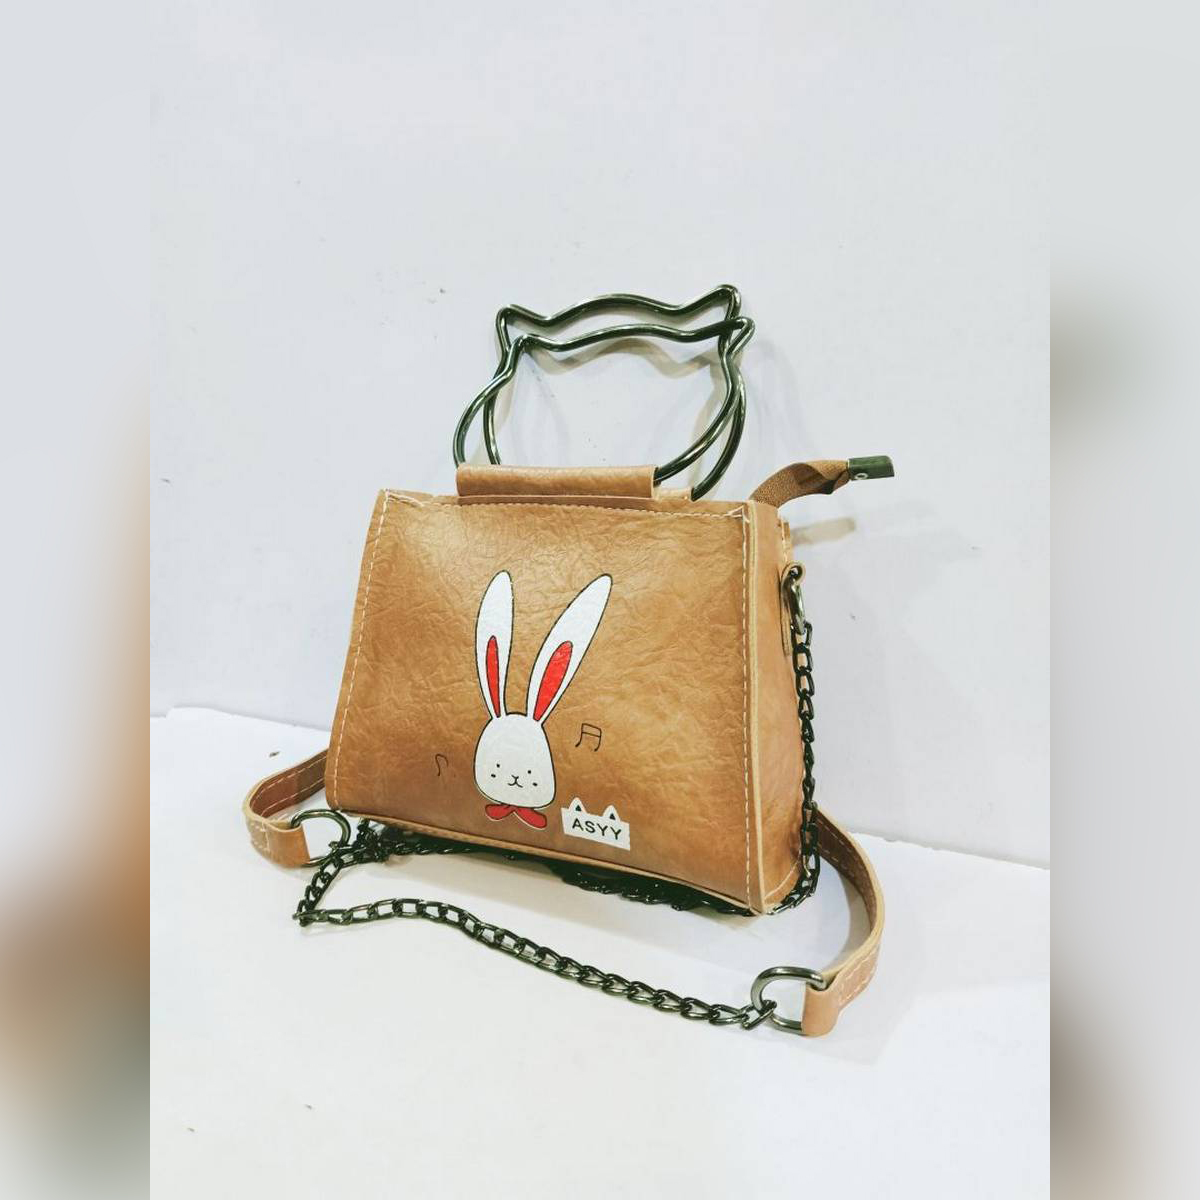 2 Style Use Pu Leather Material Bag(Double Steel Handle Hand Clutch+Side Shoulder Carry Bag)